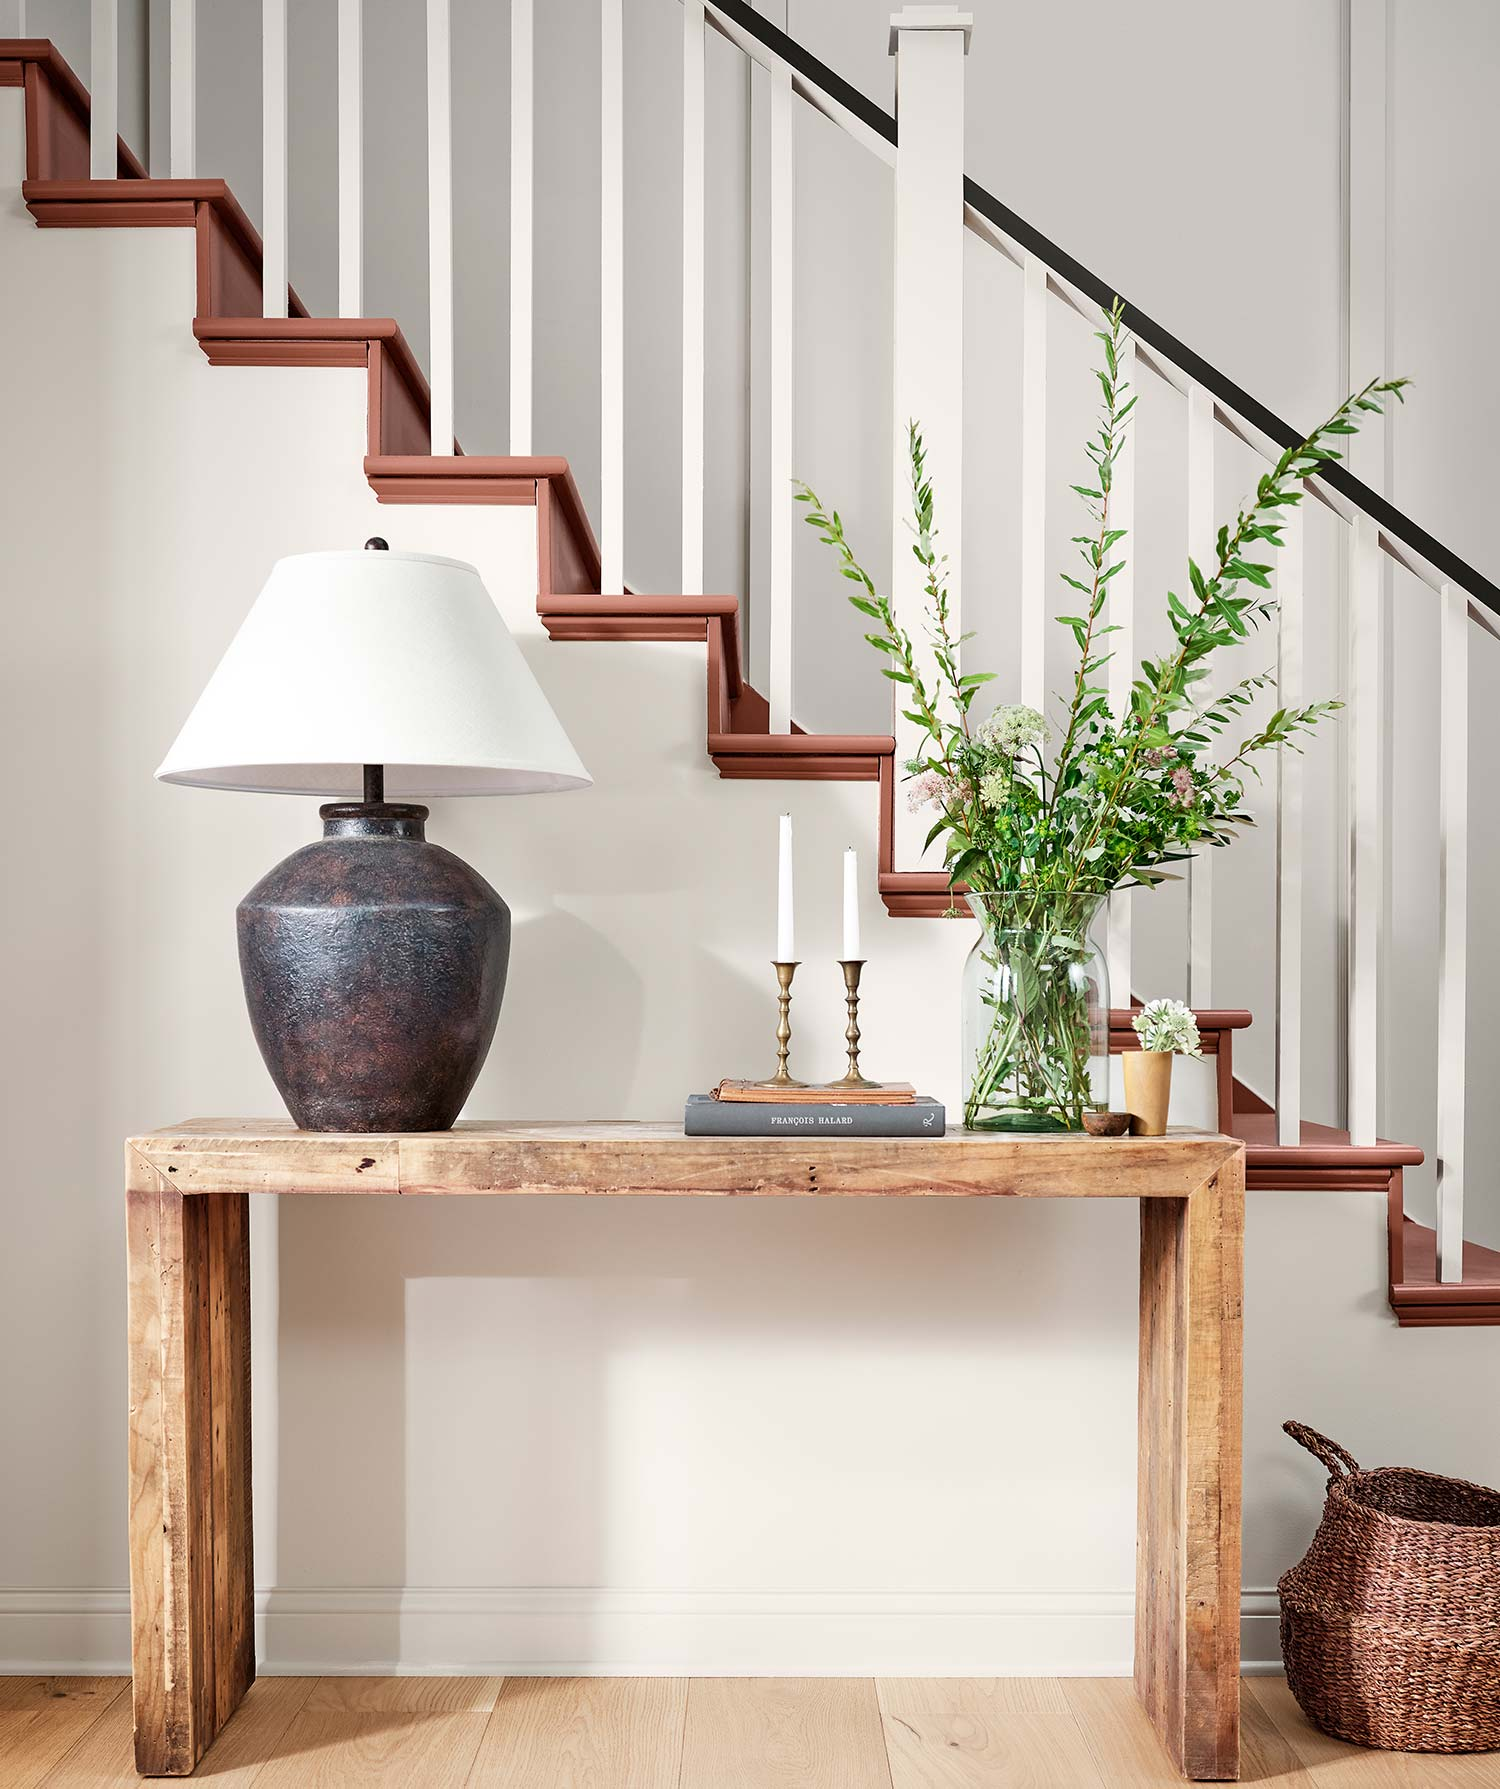 Wooden table with plant, lamp, and candle near stairs painted in Canyon Clay SW 6054.